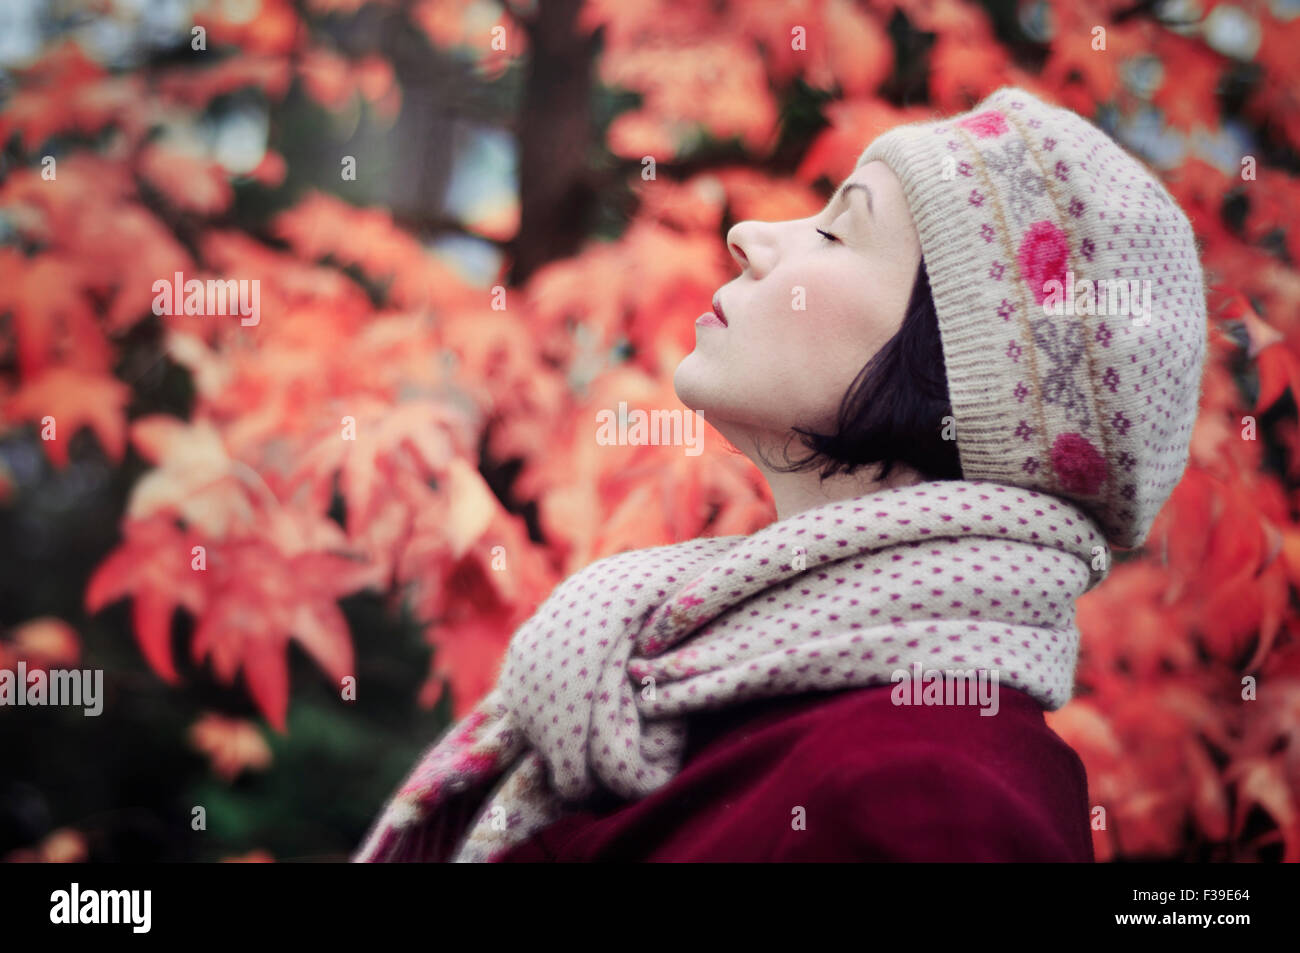 Woman enjoying life portrait eyes closed side view - Stock Image